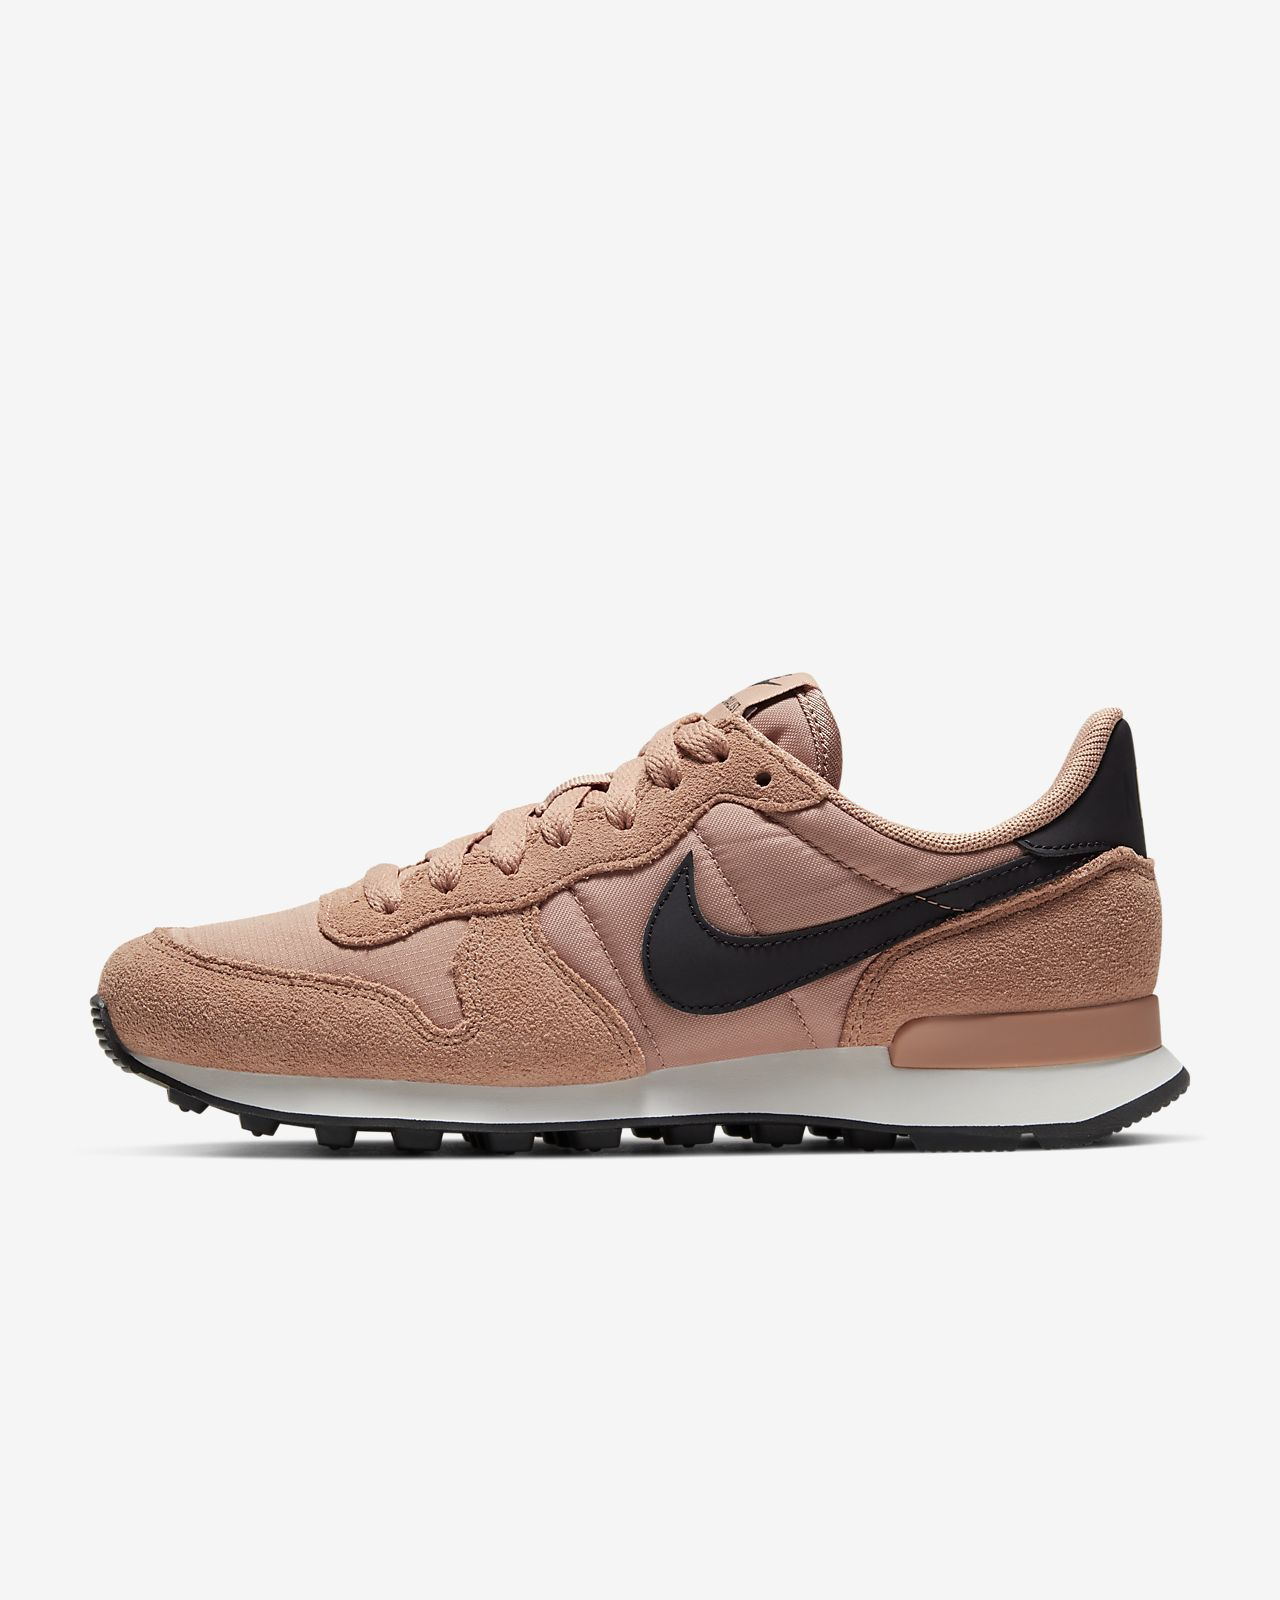 brand new 08be3 de3dc Low Resolution Chaussure Nike Internationalist pour Femme Chaussure Nike  Internationalist pour Femme